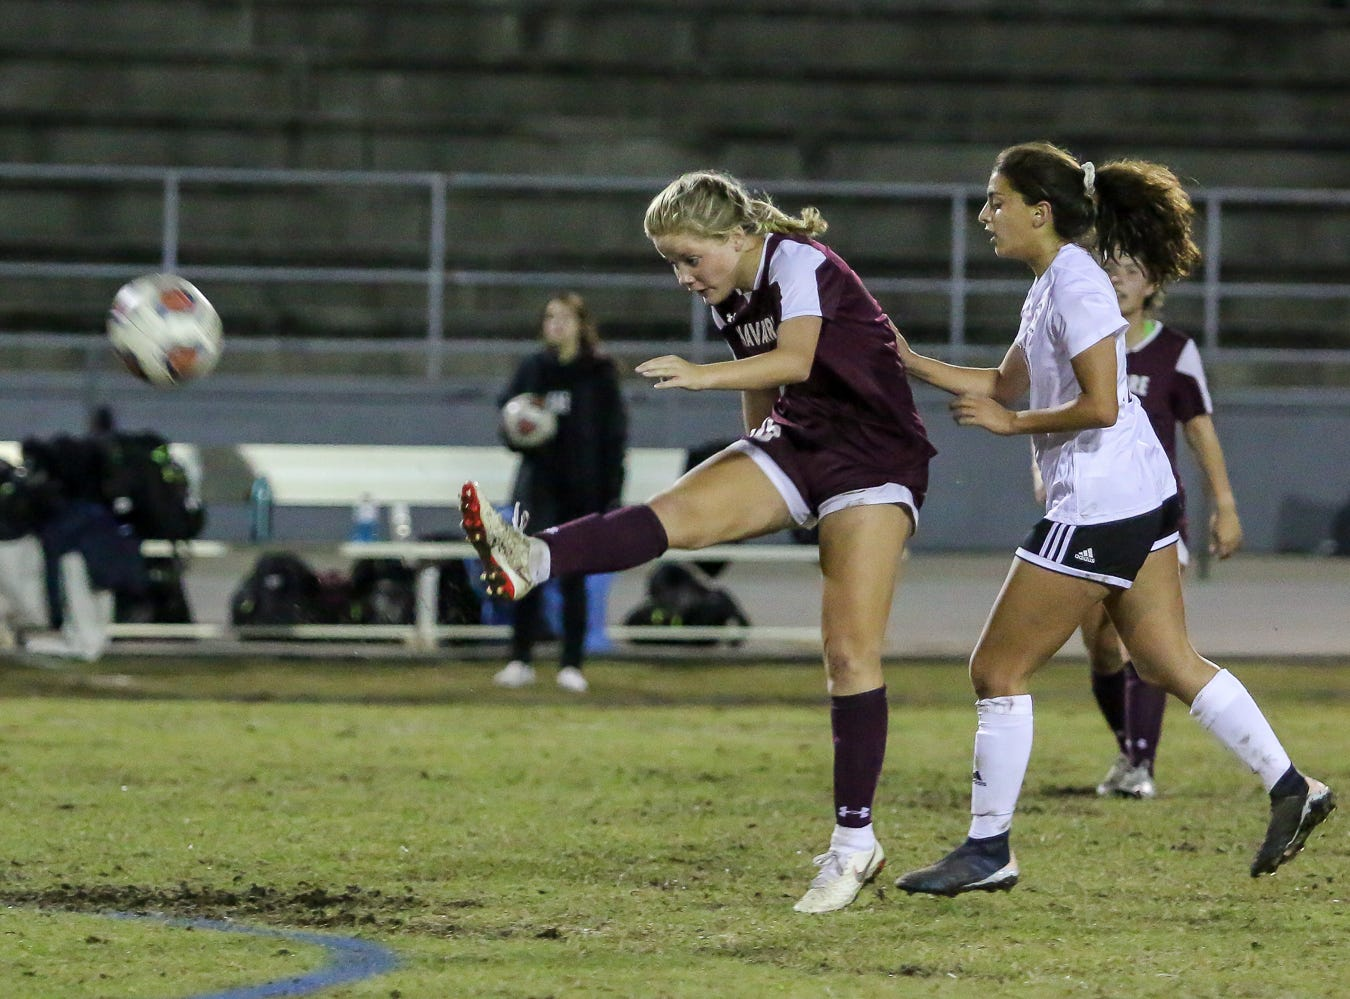 Navarre's Autumn Slaybaugh (15) kicks a long pass into the Niceville zone in a District 1-4A showdown of unbeaten teams at Navarre High School on Tuesday, December 4, 2018. The game ended in a 1-1 tie.